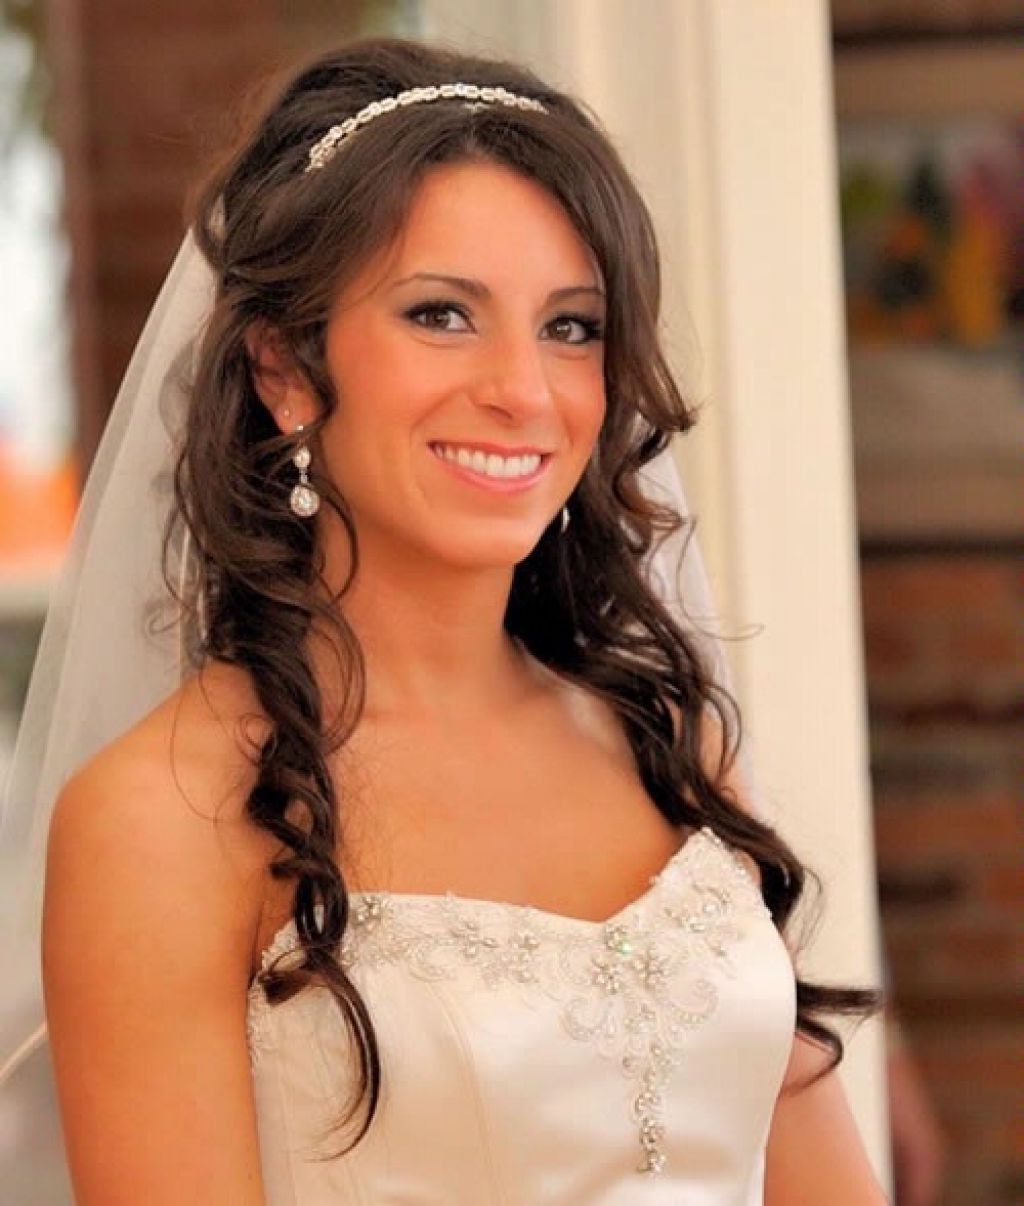 Latest Wedding Hairstyles For Long Hair With Veils And Tiaras Inside Wedding Hairstyles For Long Hair With Veil – Hairstyle For Women & Man (View 5 of 15)